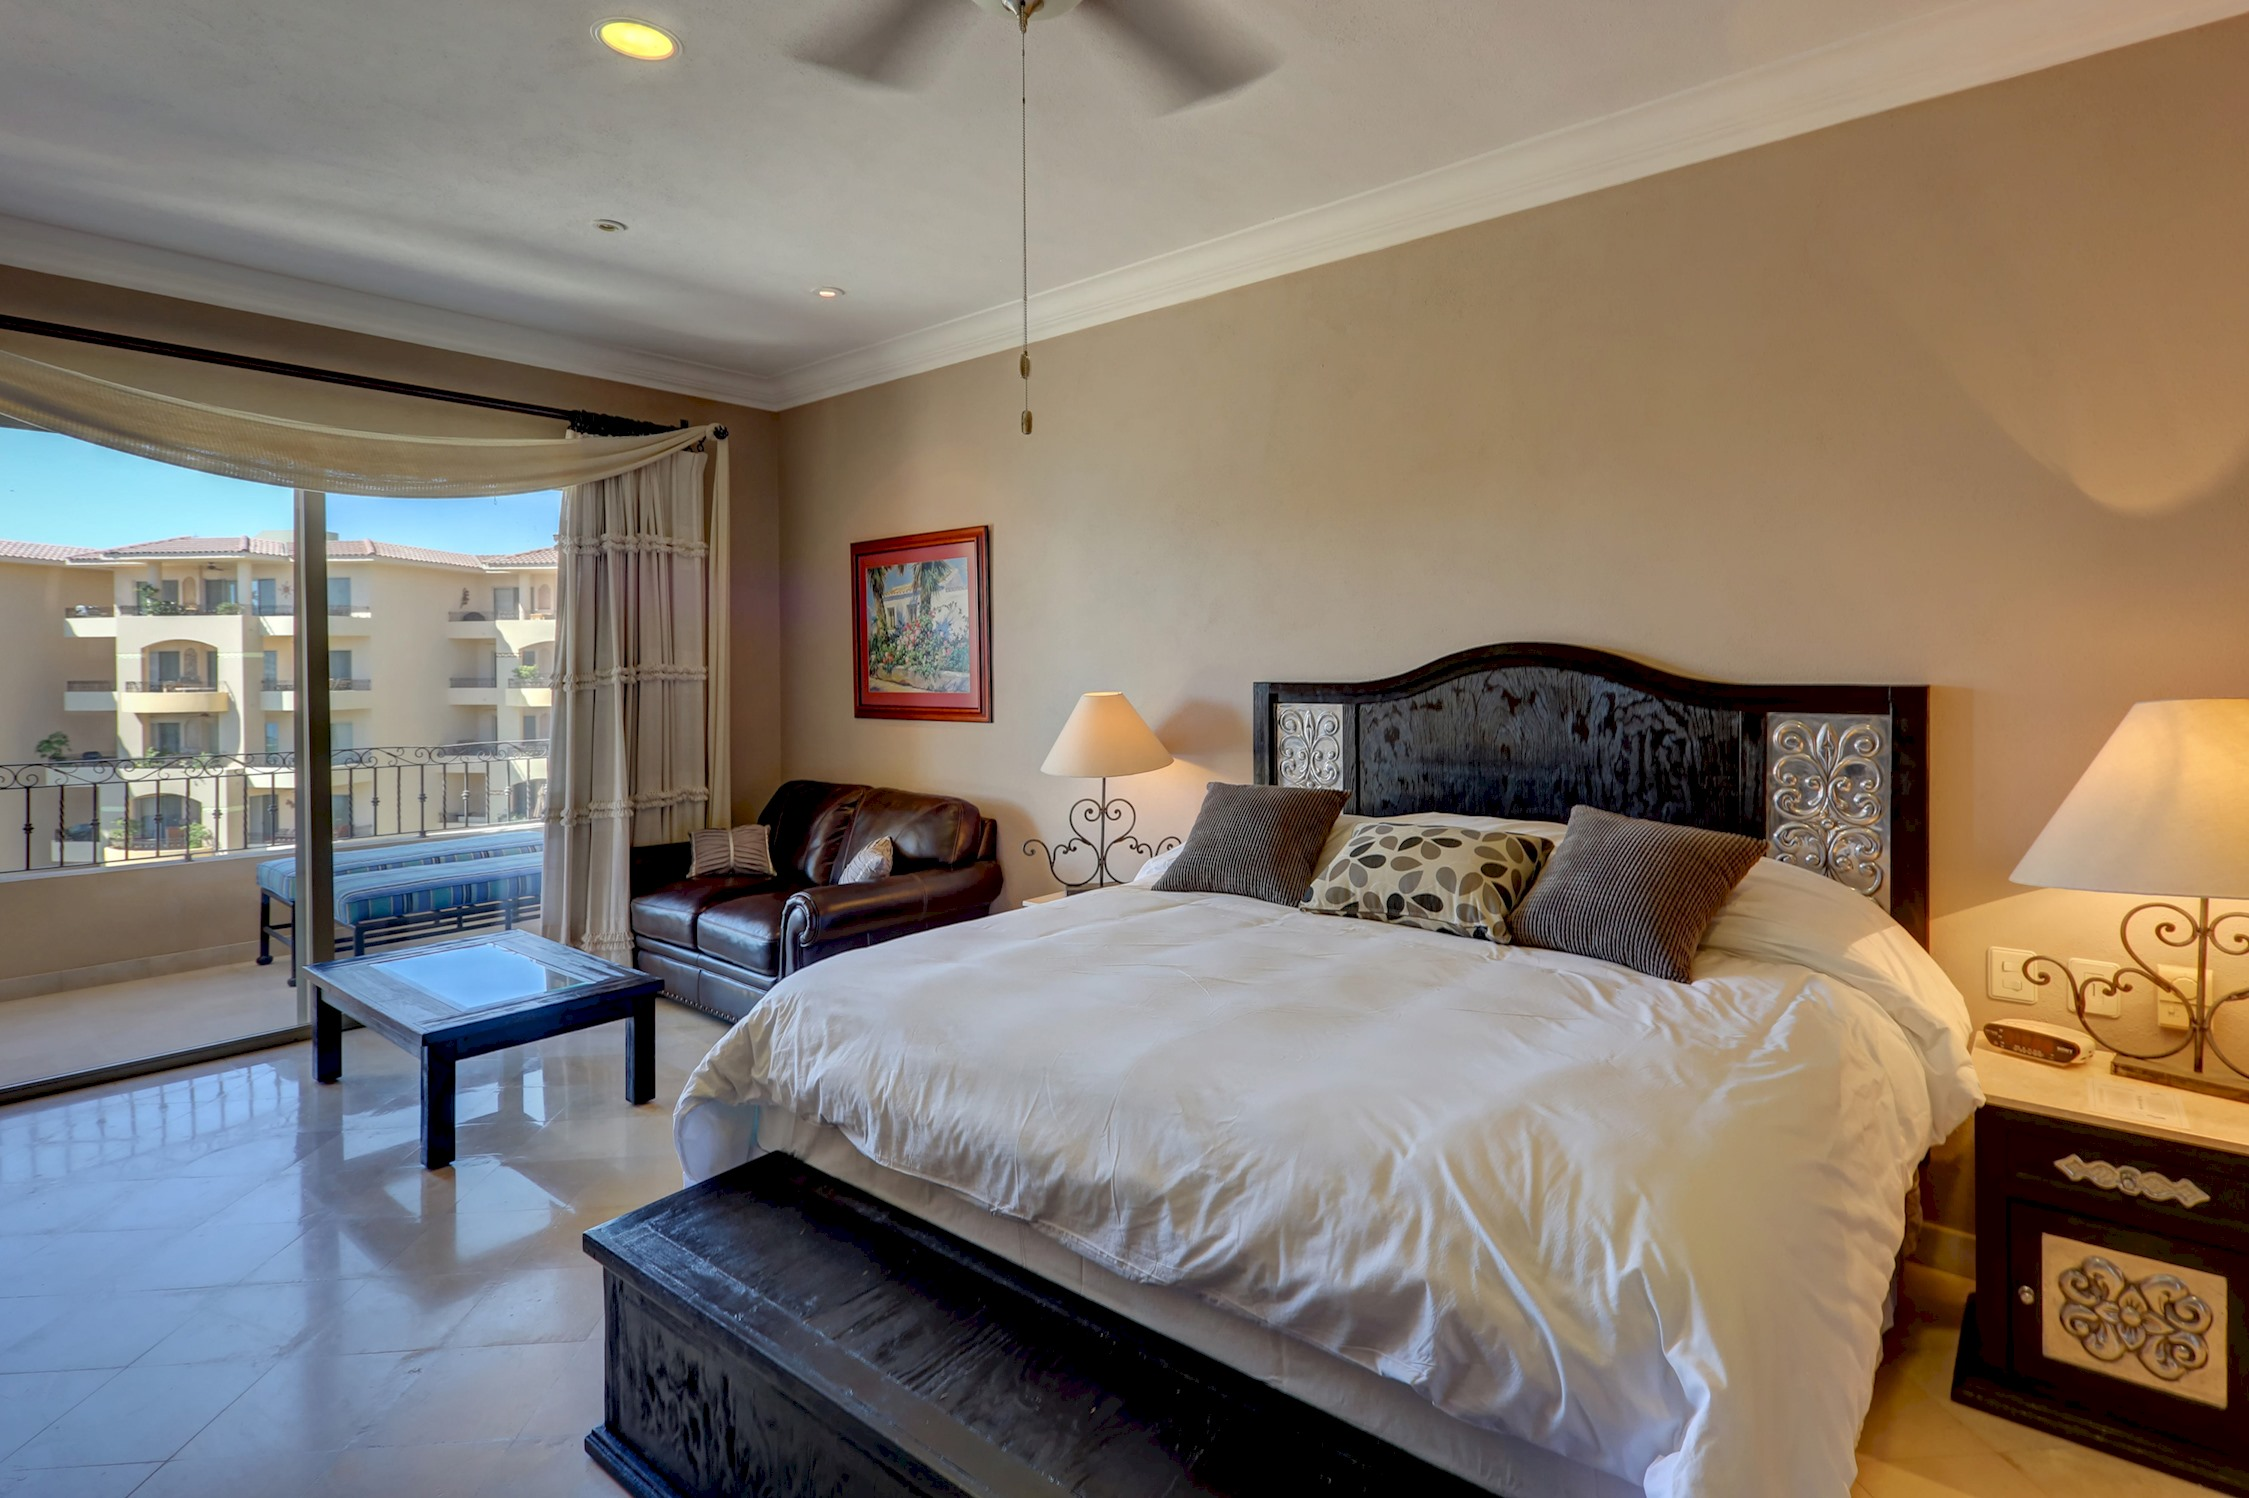 Apartment Premium Ocean View  2 Bedrooms - 3 Bathrooms photo 22367985